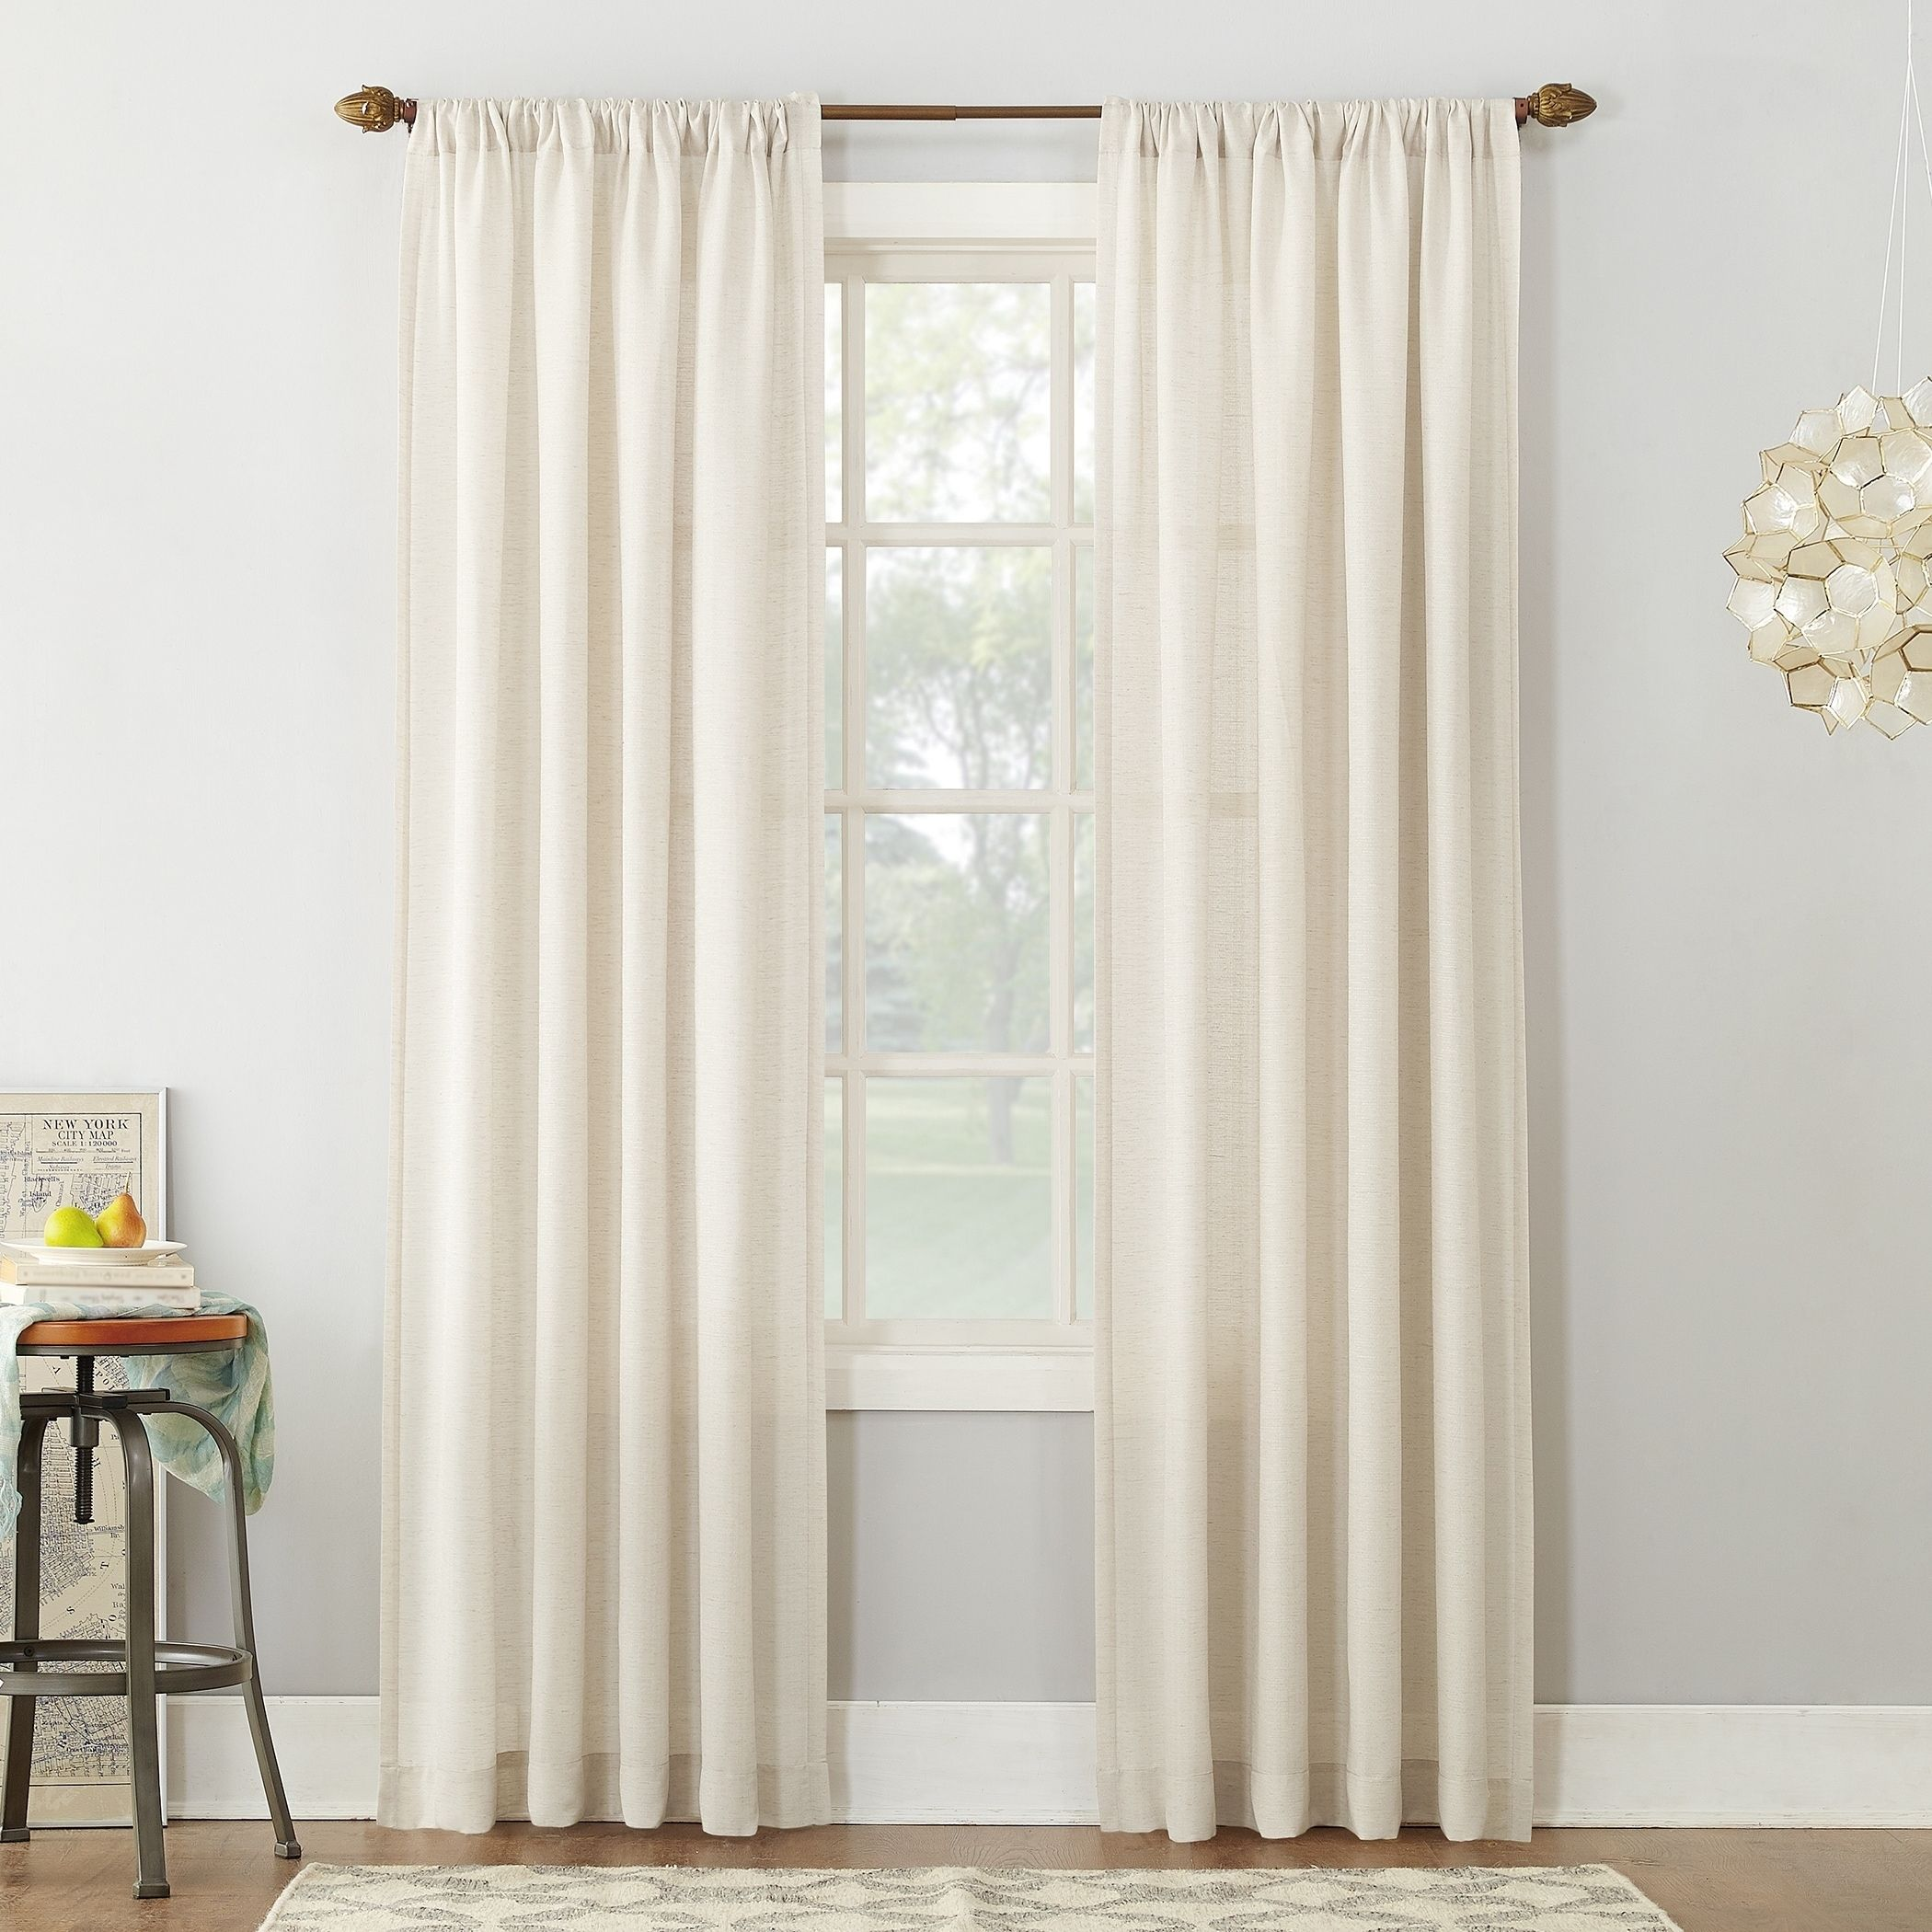 beautiful Textured Sheer Curtains Part - 20: 918 Amalfi Linen Blend Textured Sheer Rod Pocket Curtain Panel (Ivory - 84  Inches - 54X84) (Polyester, Solid)